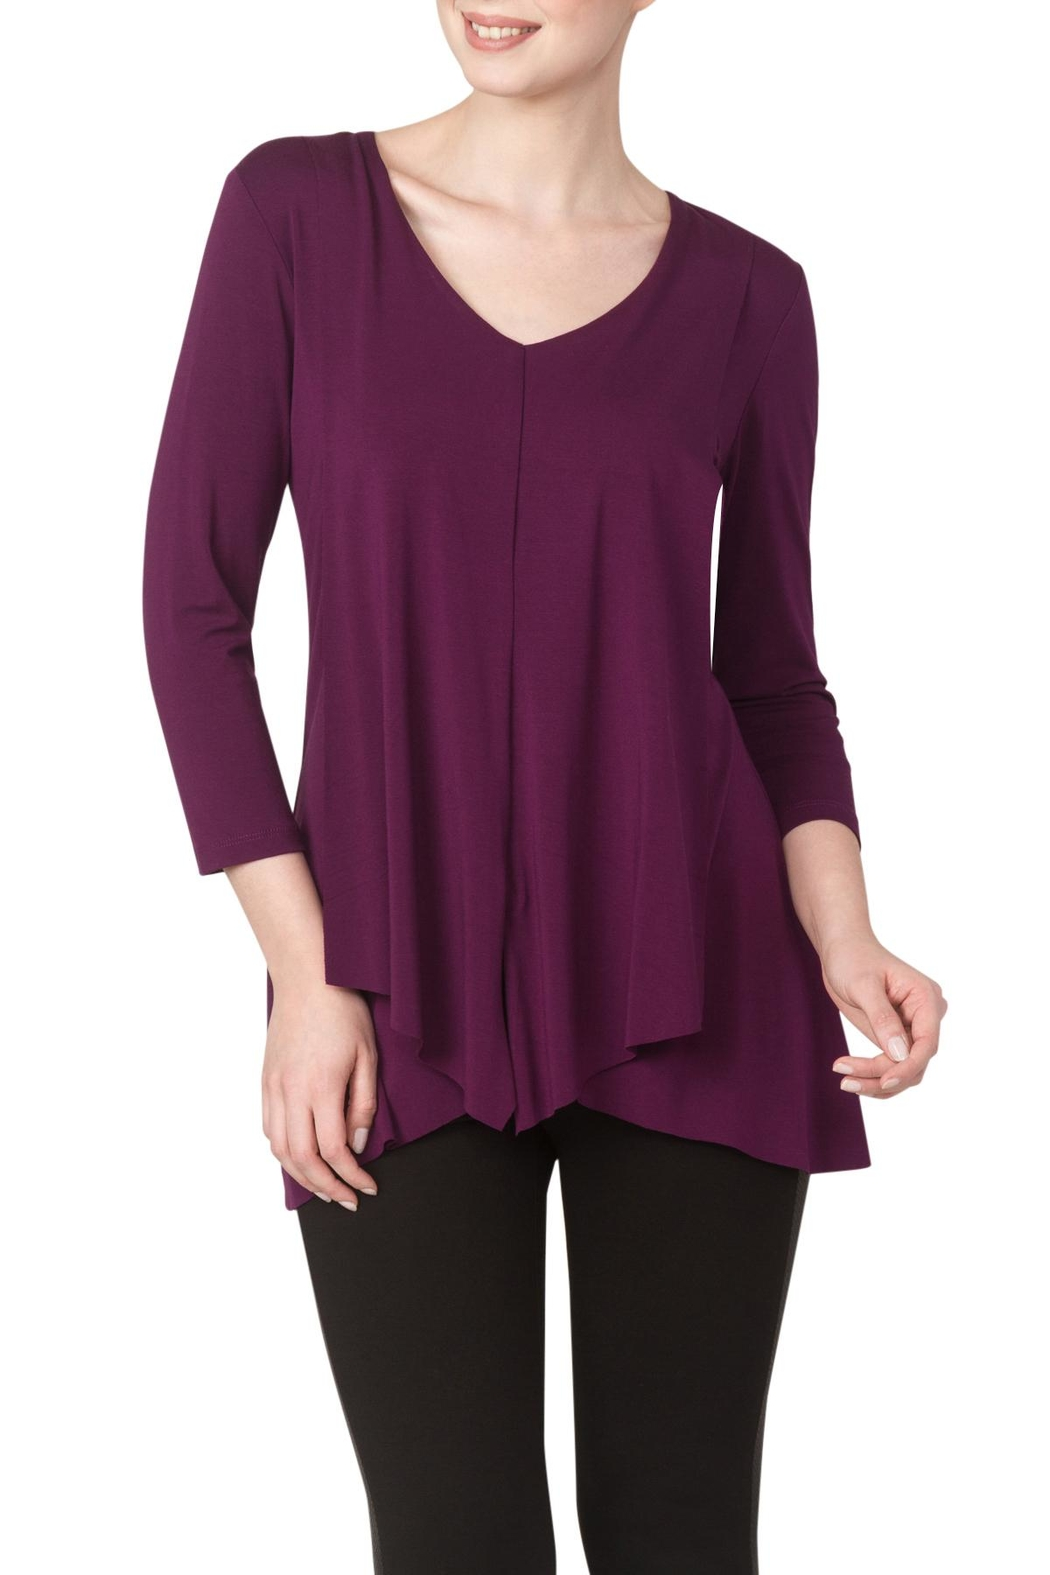 Yvonne Marie Plum Flyaway Top - Front Cropped Image